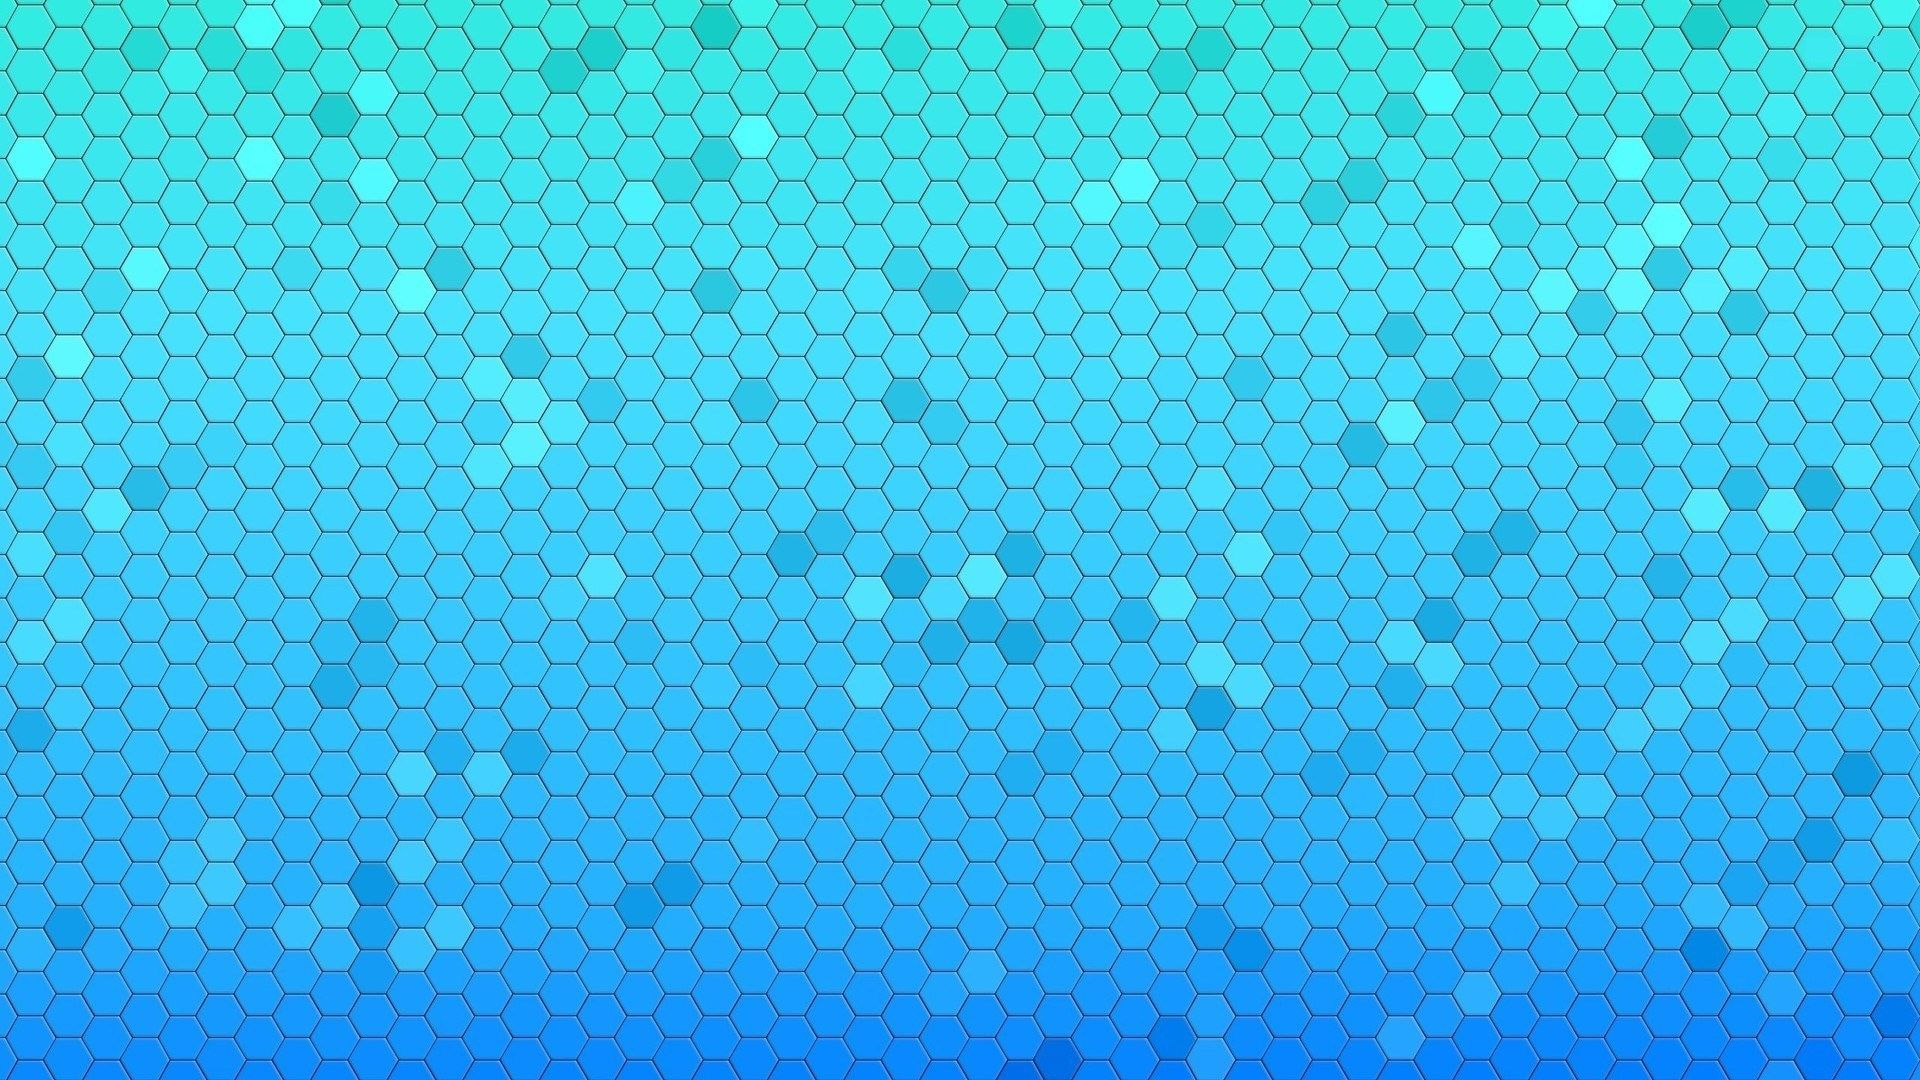 blue carbon fiber wallpaper hd honeycomb pattern abstract